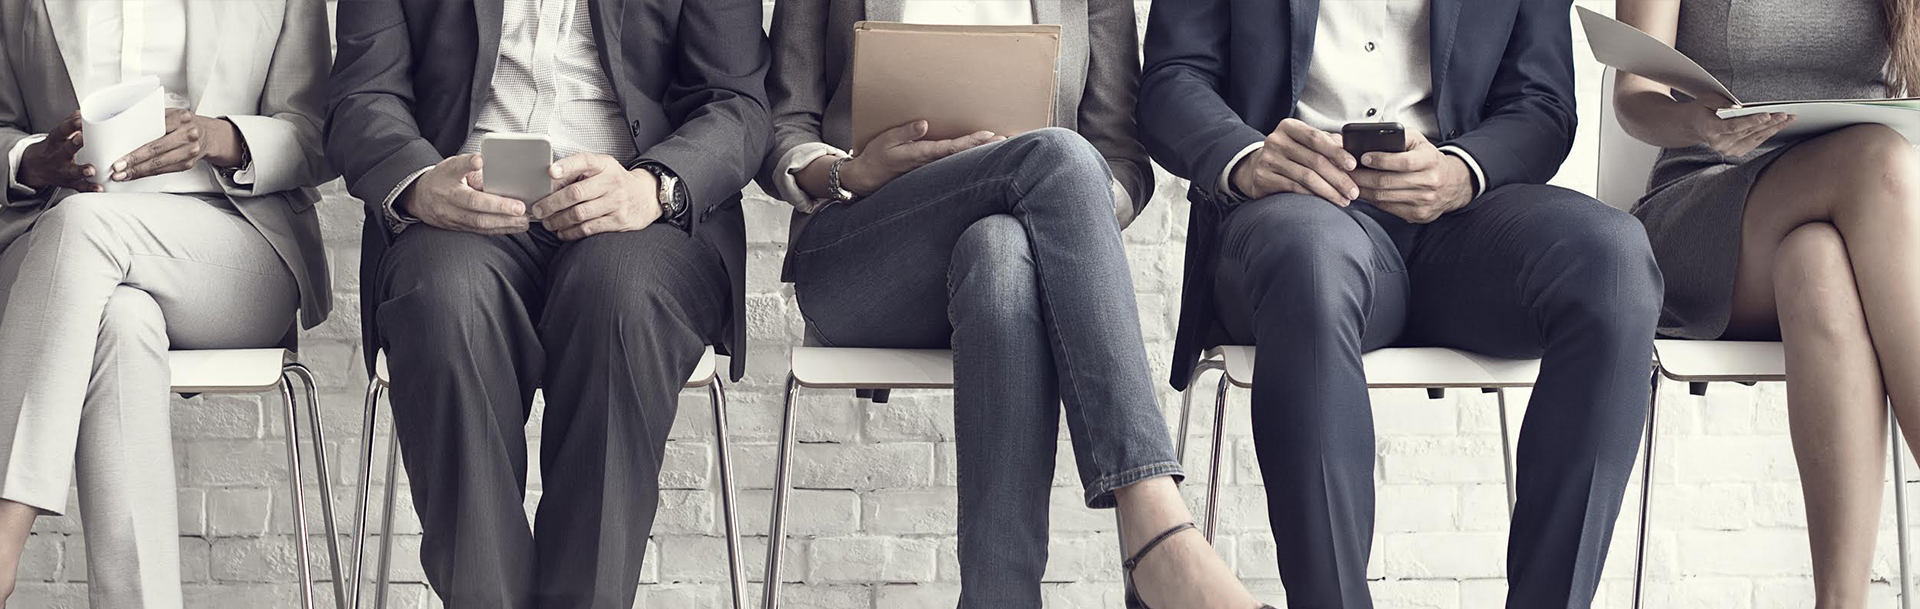 Abstract image of business people sitting